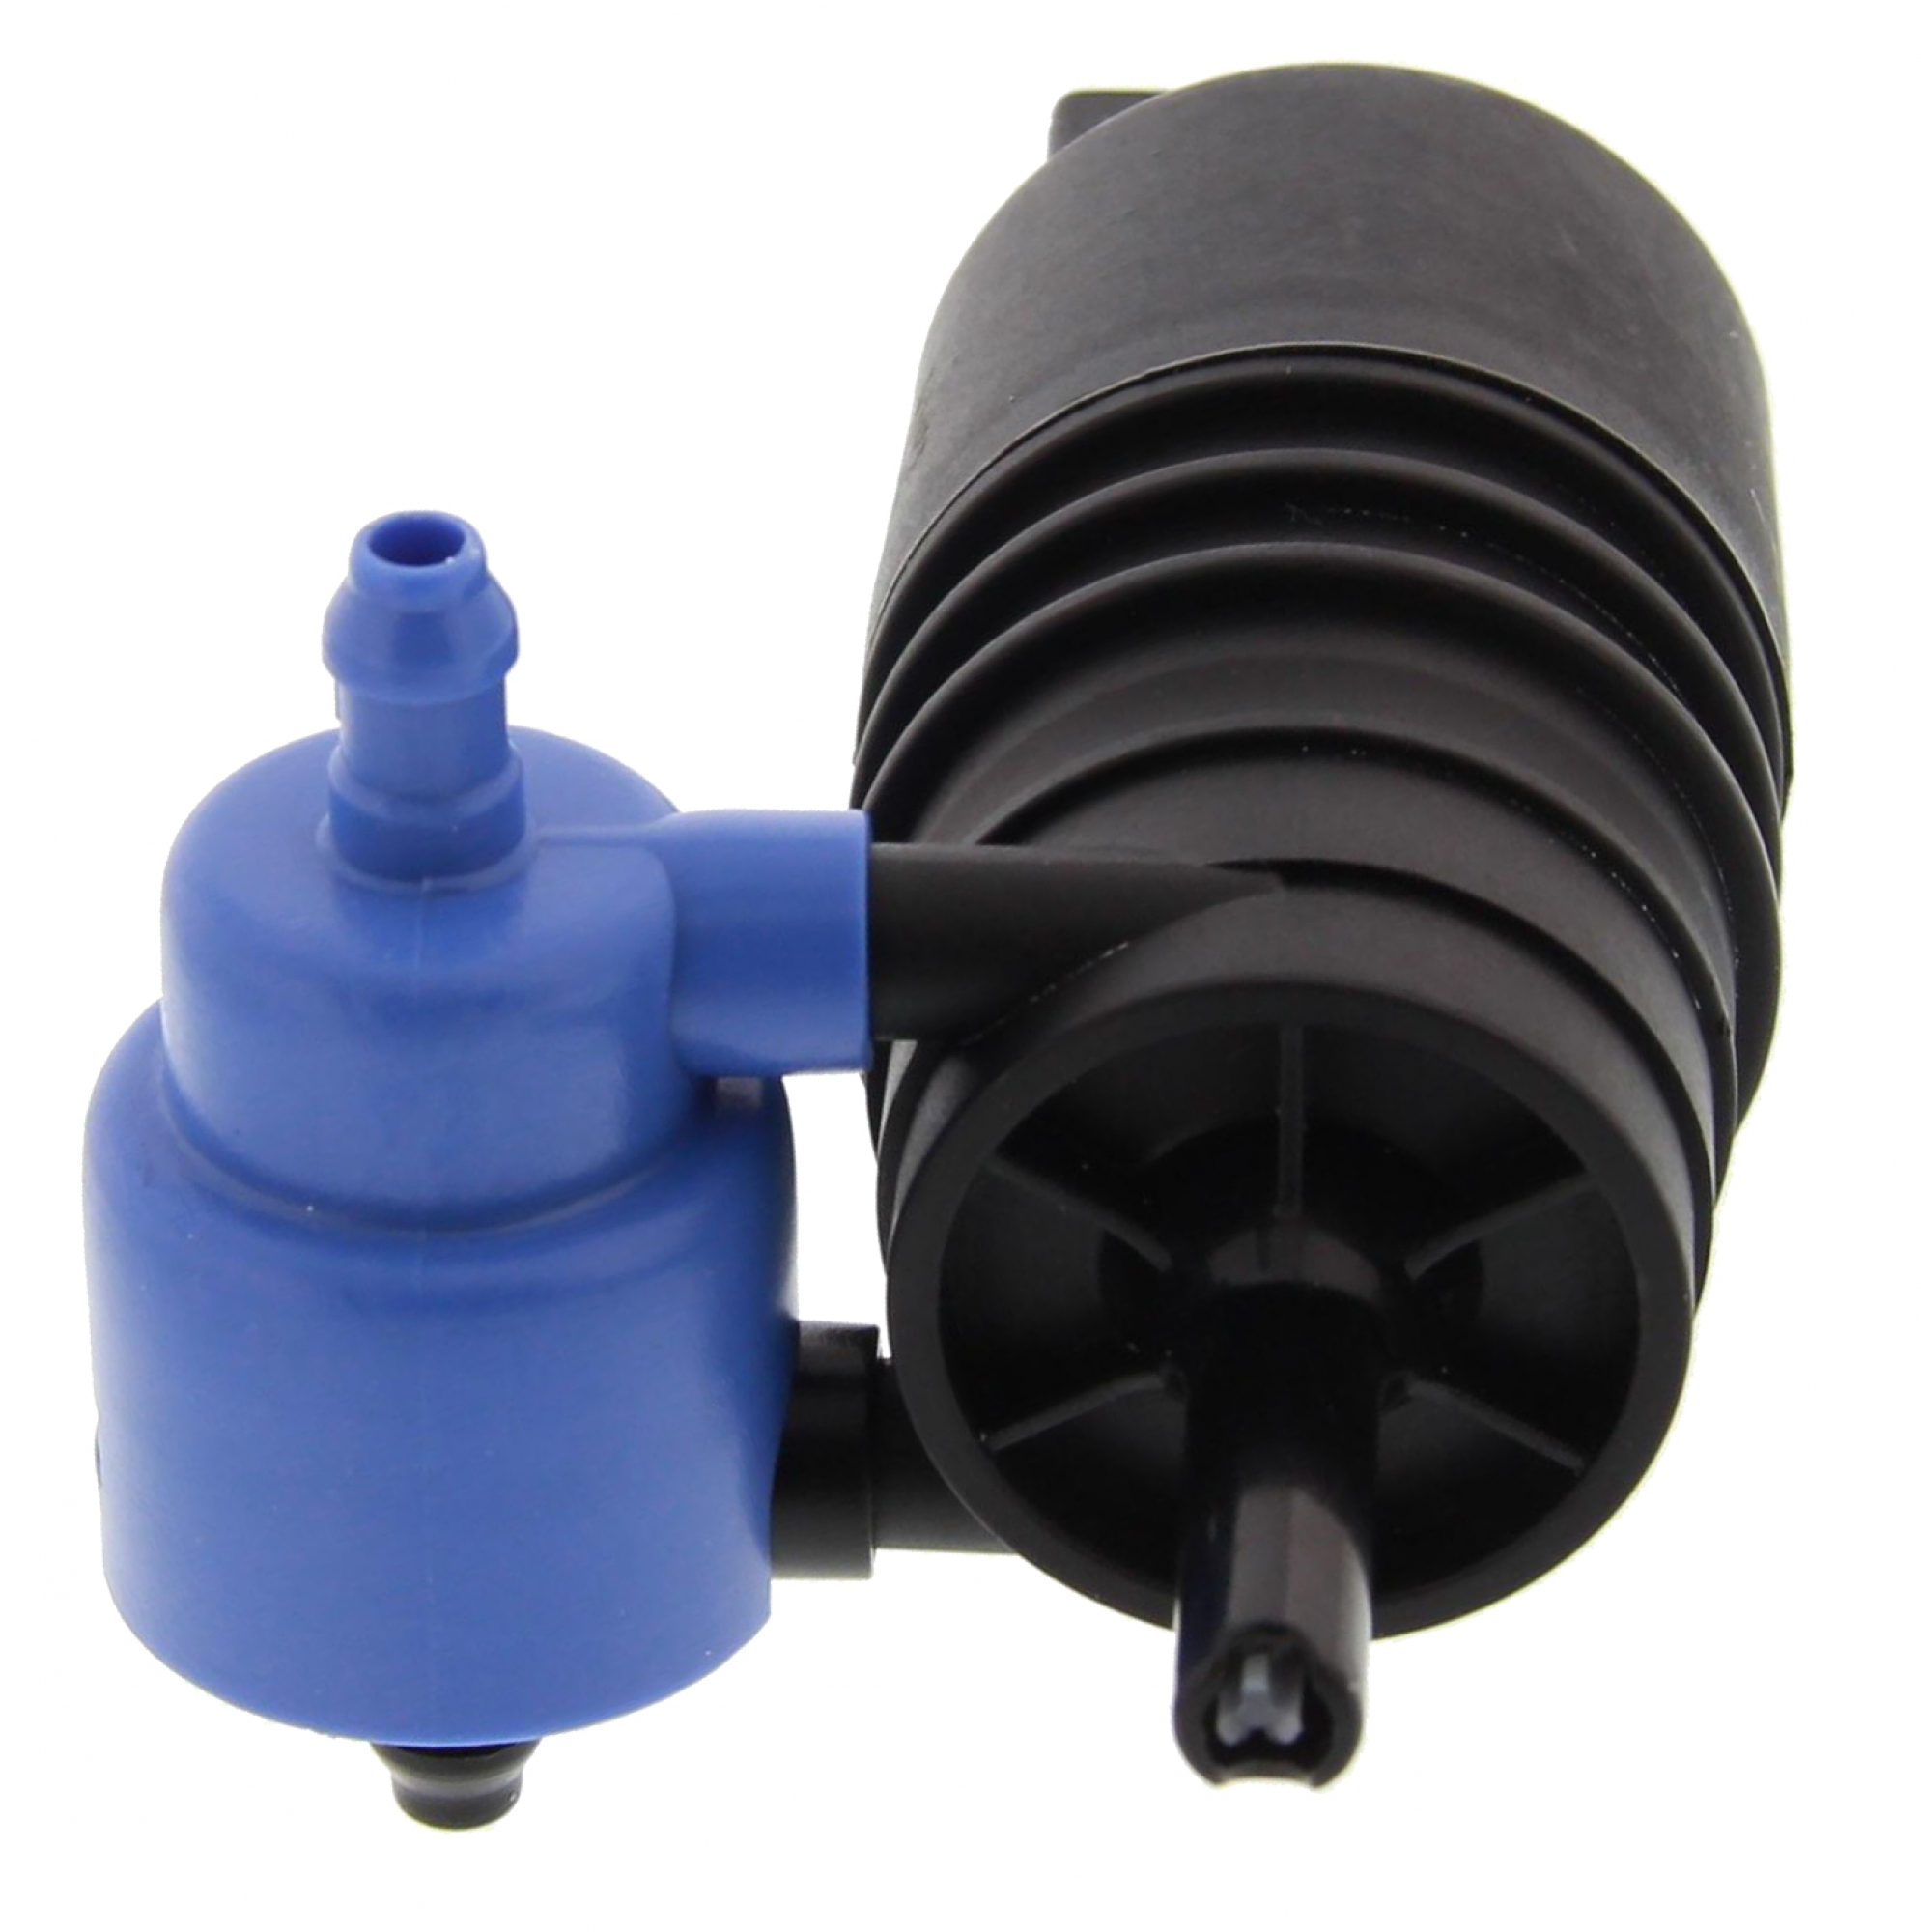 MAPCO 90703 Water Pump, window cleaning